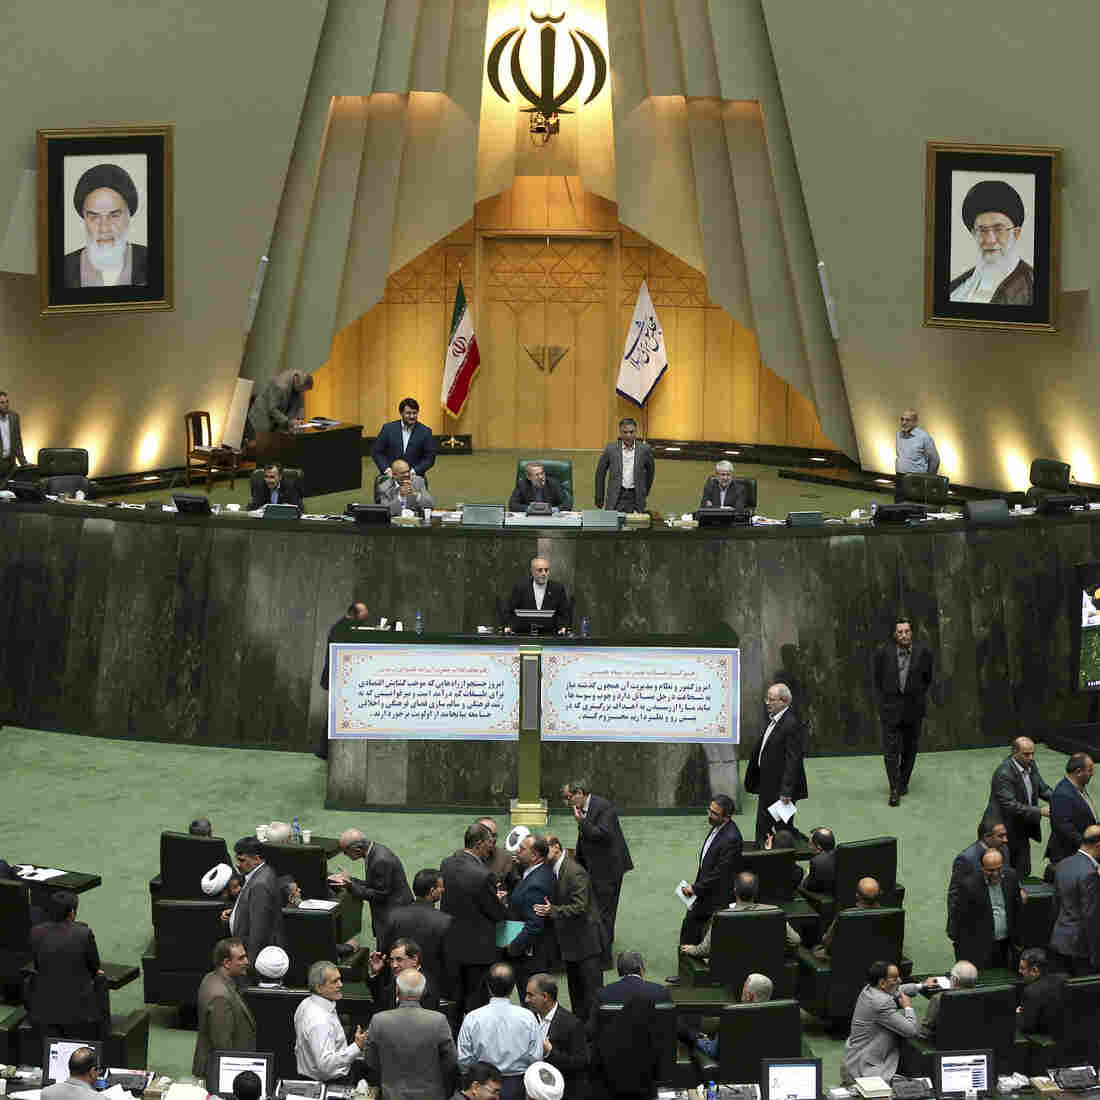 Head of Iran's Atomic Energy Organization Ali Akbar Salehi, center, speaks in an open session of parliament while discussing the bill on Iran's nuclear deal with world powers, in Tehran, Iran, Oct. 11, 2015. Starting Sunday, the approved nuclear deal begins being adopted and implemented.